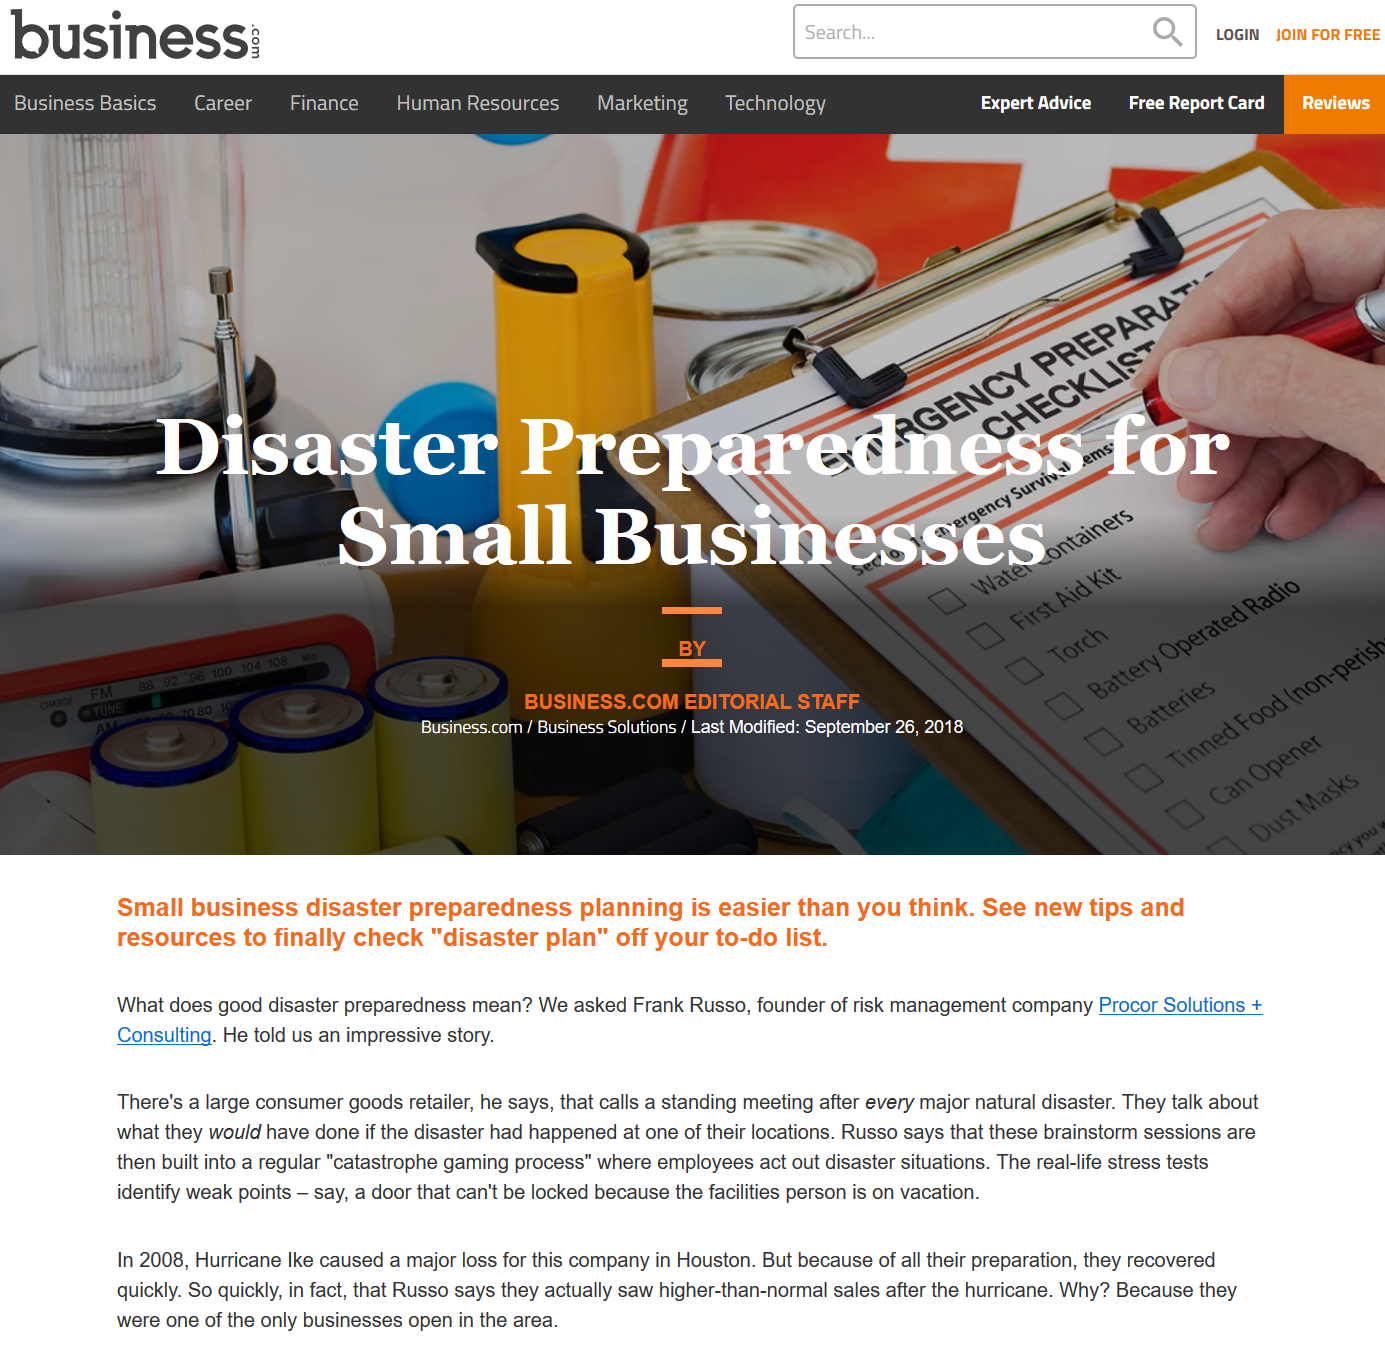 Business.com – Disaster Preparedness for Small Businesses